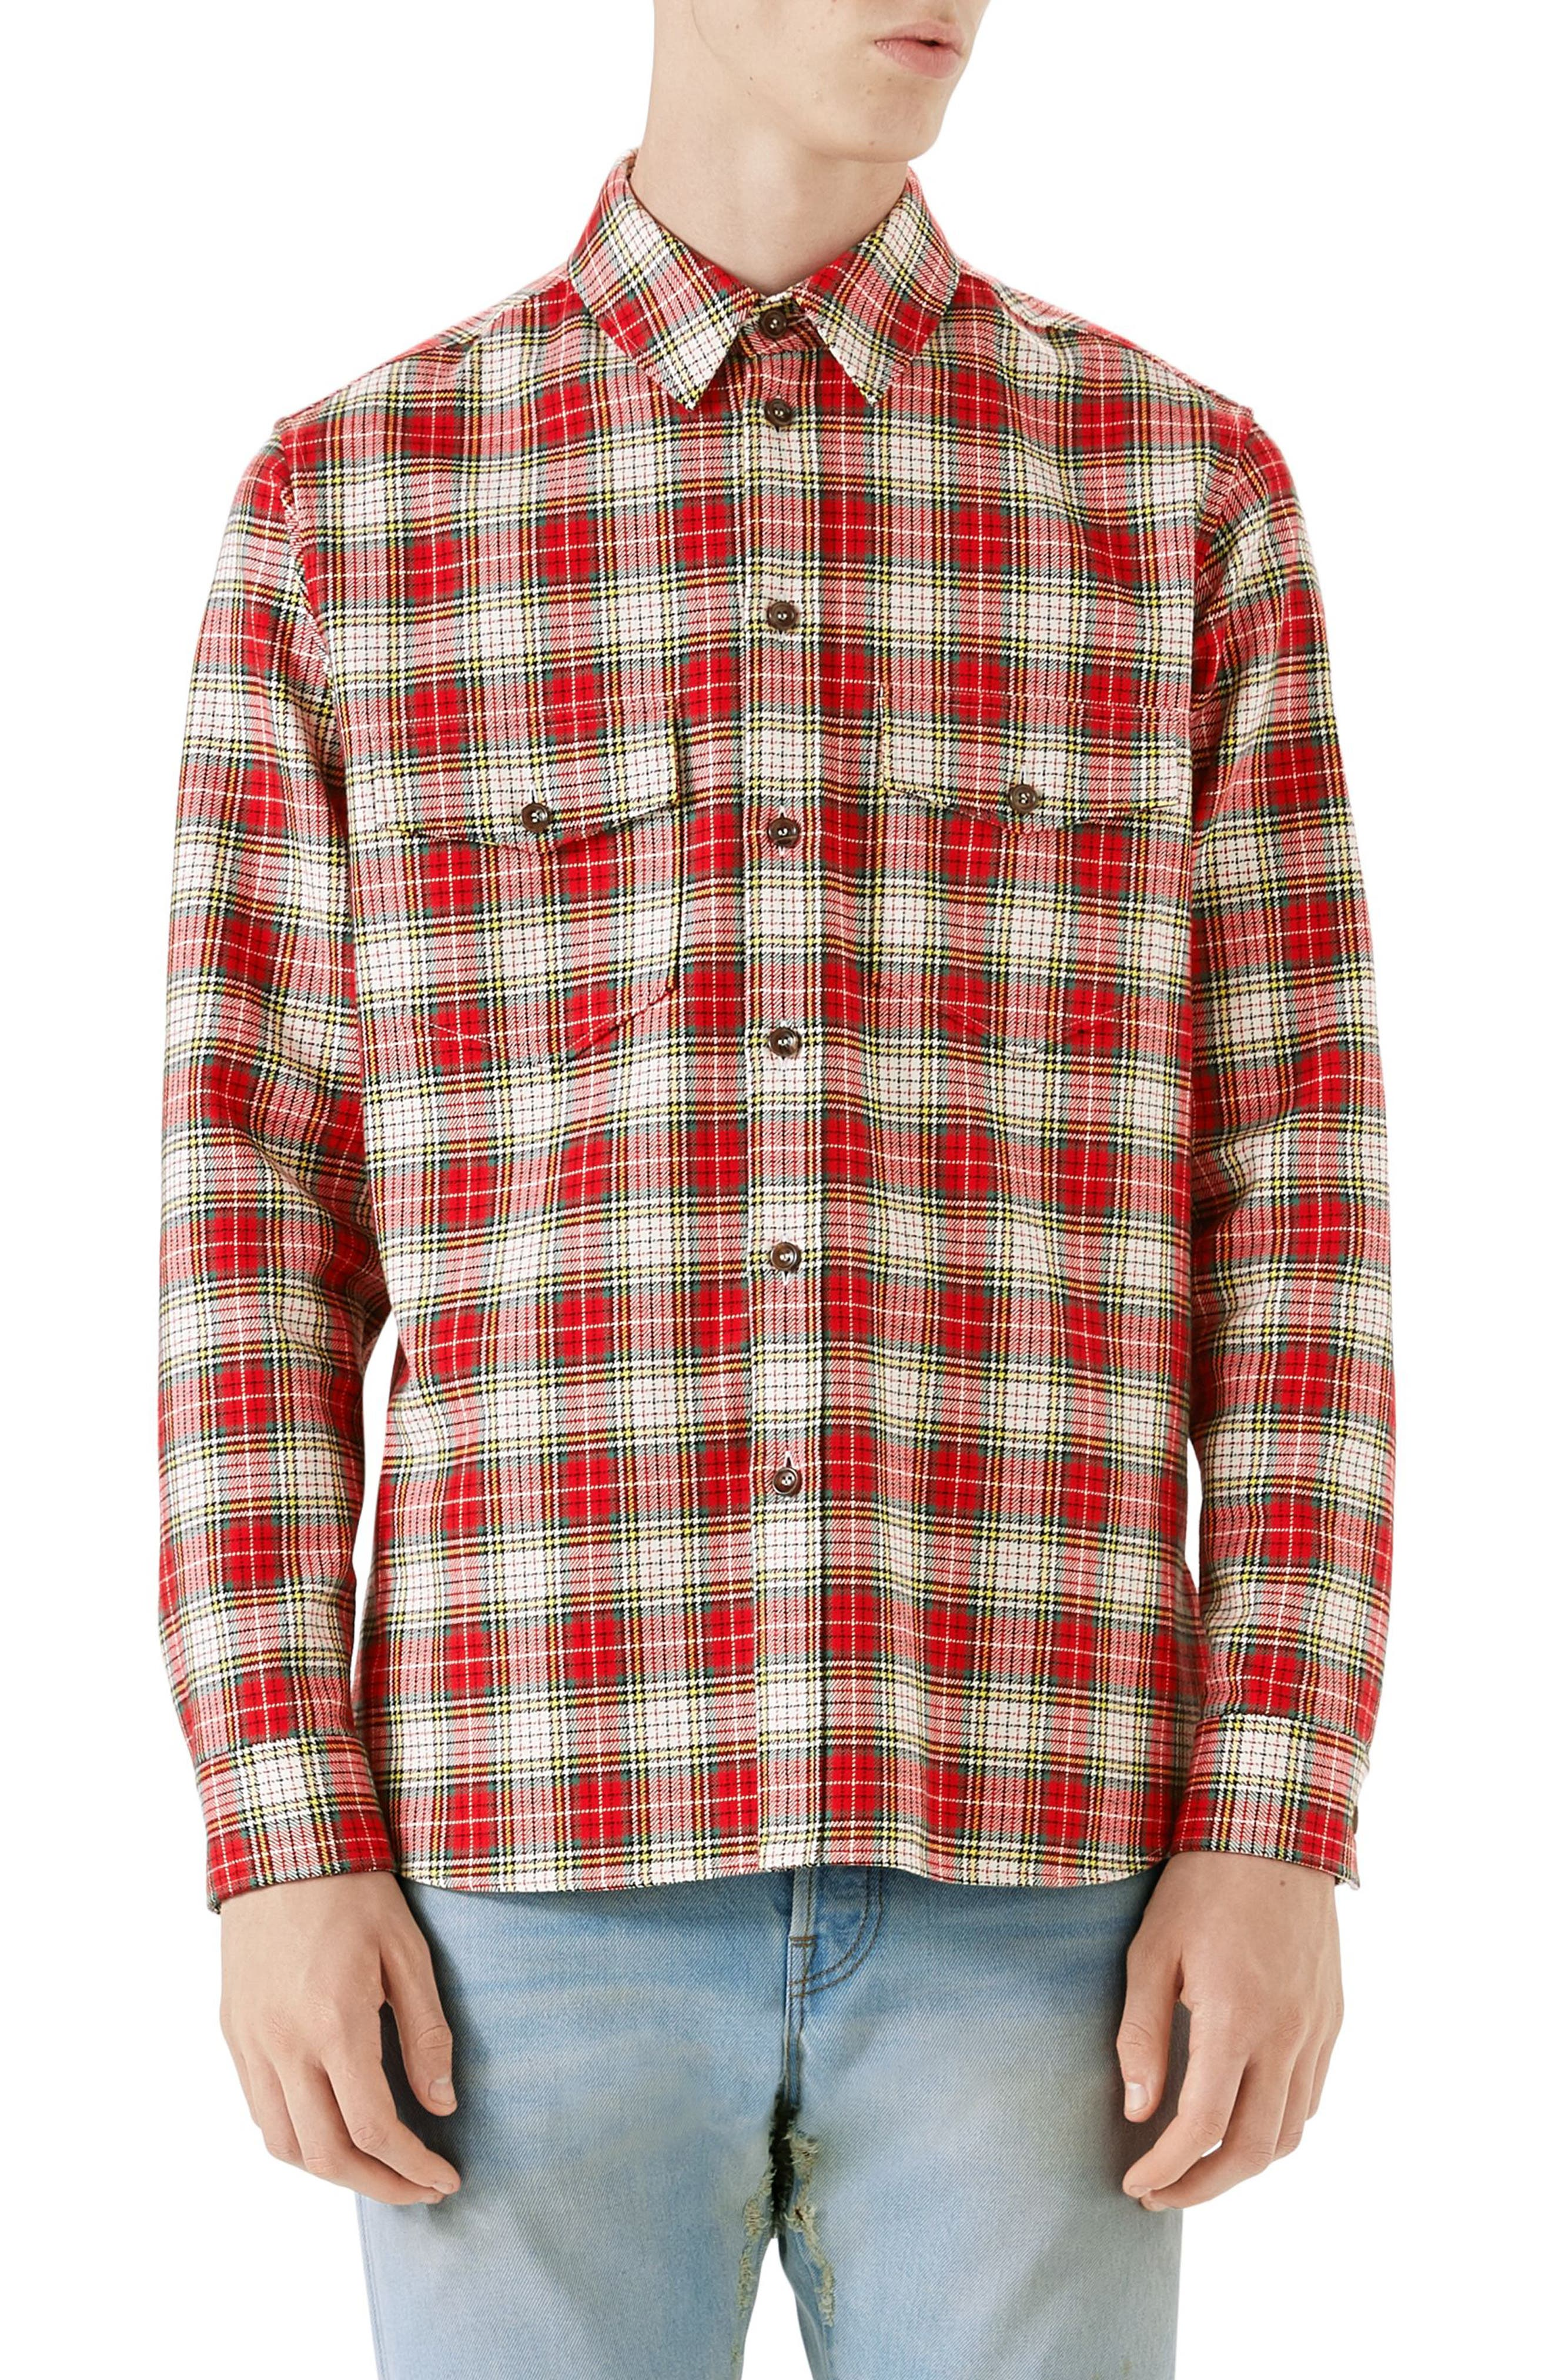 Embroidered Snake Oversize Plaid Shirt,                             Main thumbnail 1, color,                             690